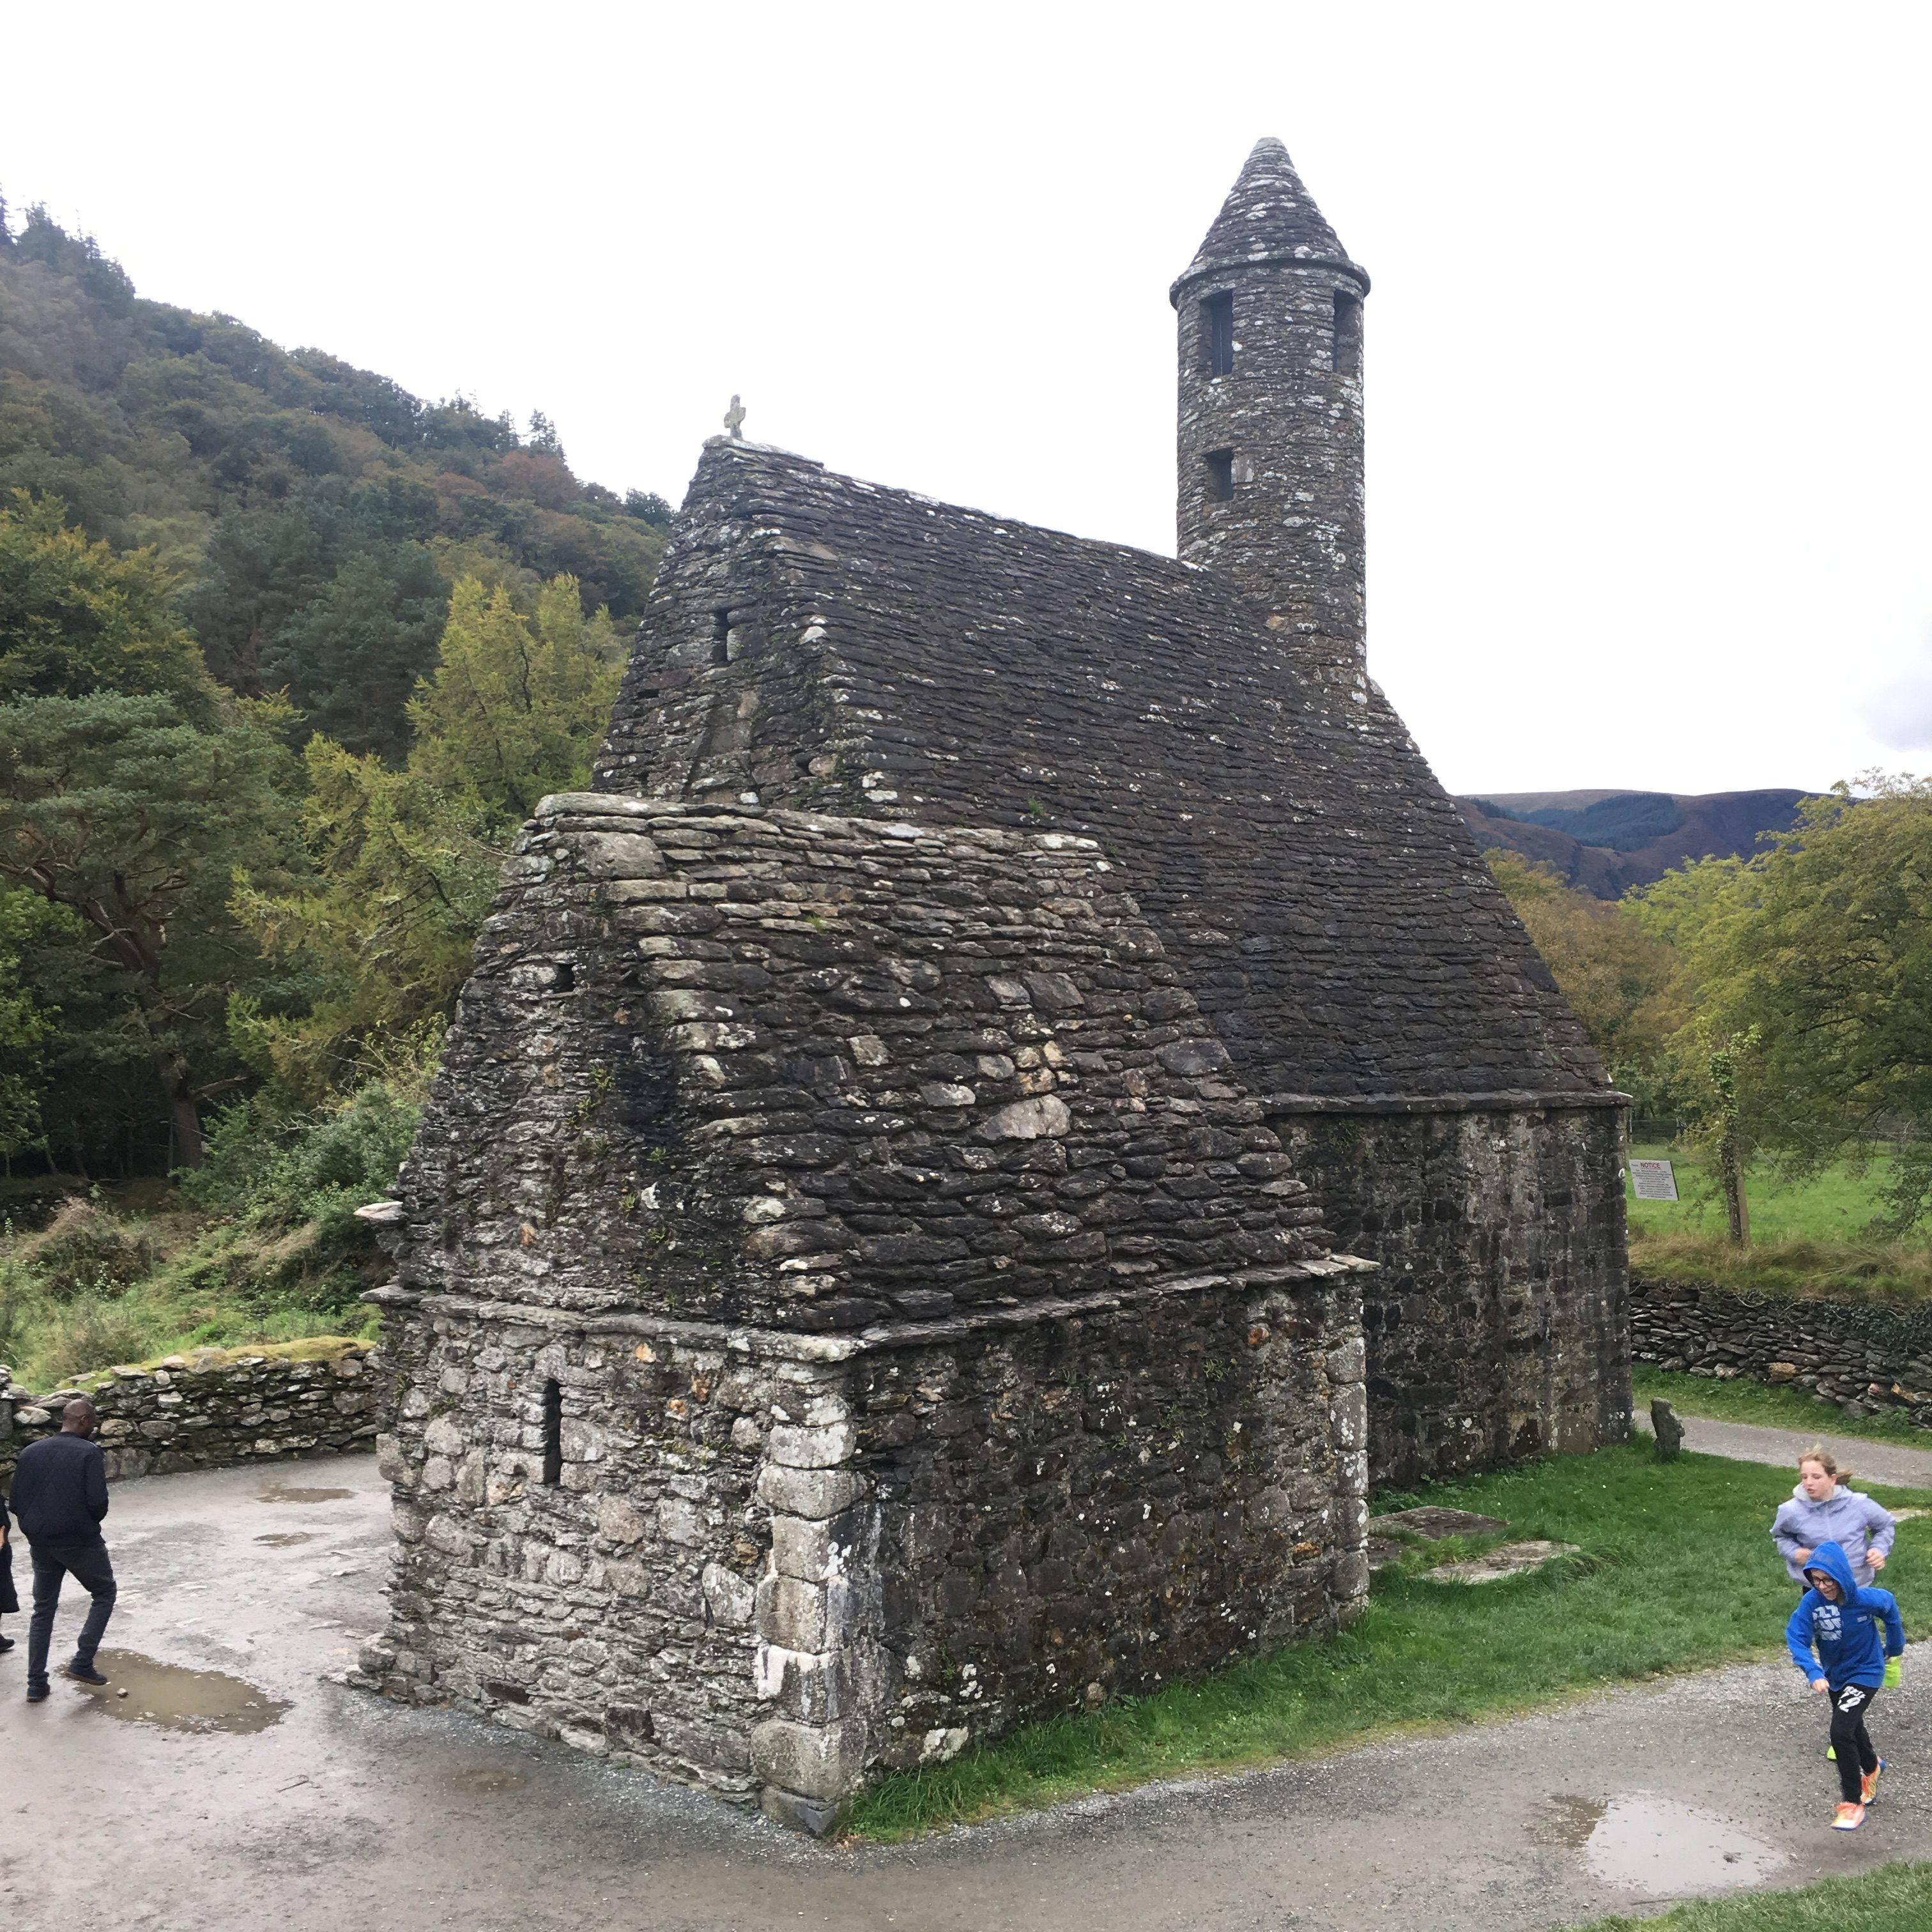 Glenfalough Monastic Church and Cemetery, Wicklow, Ireland